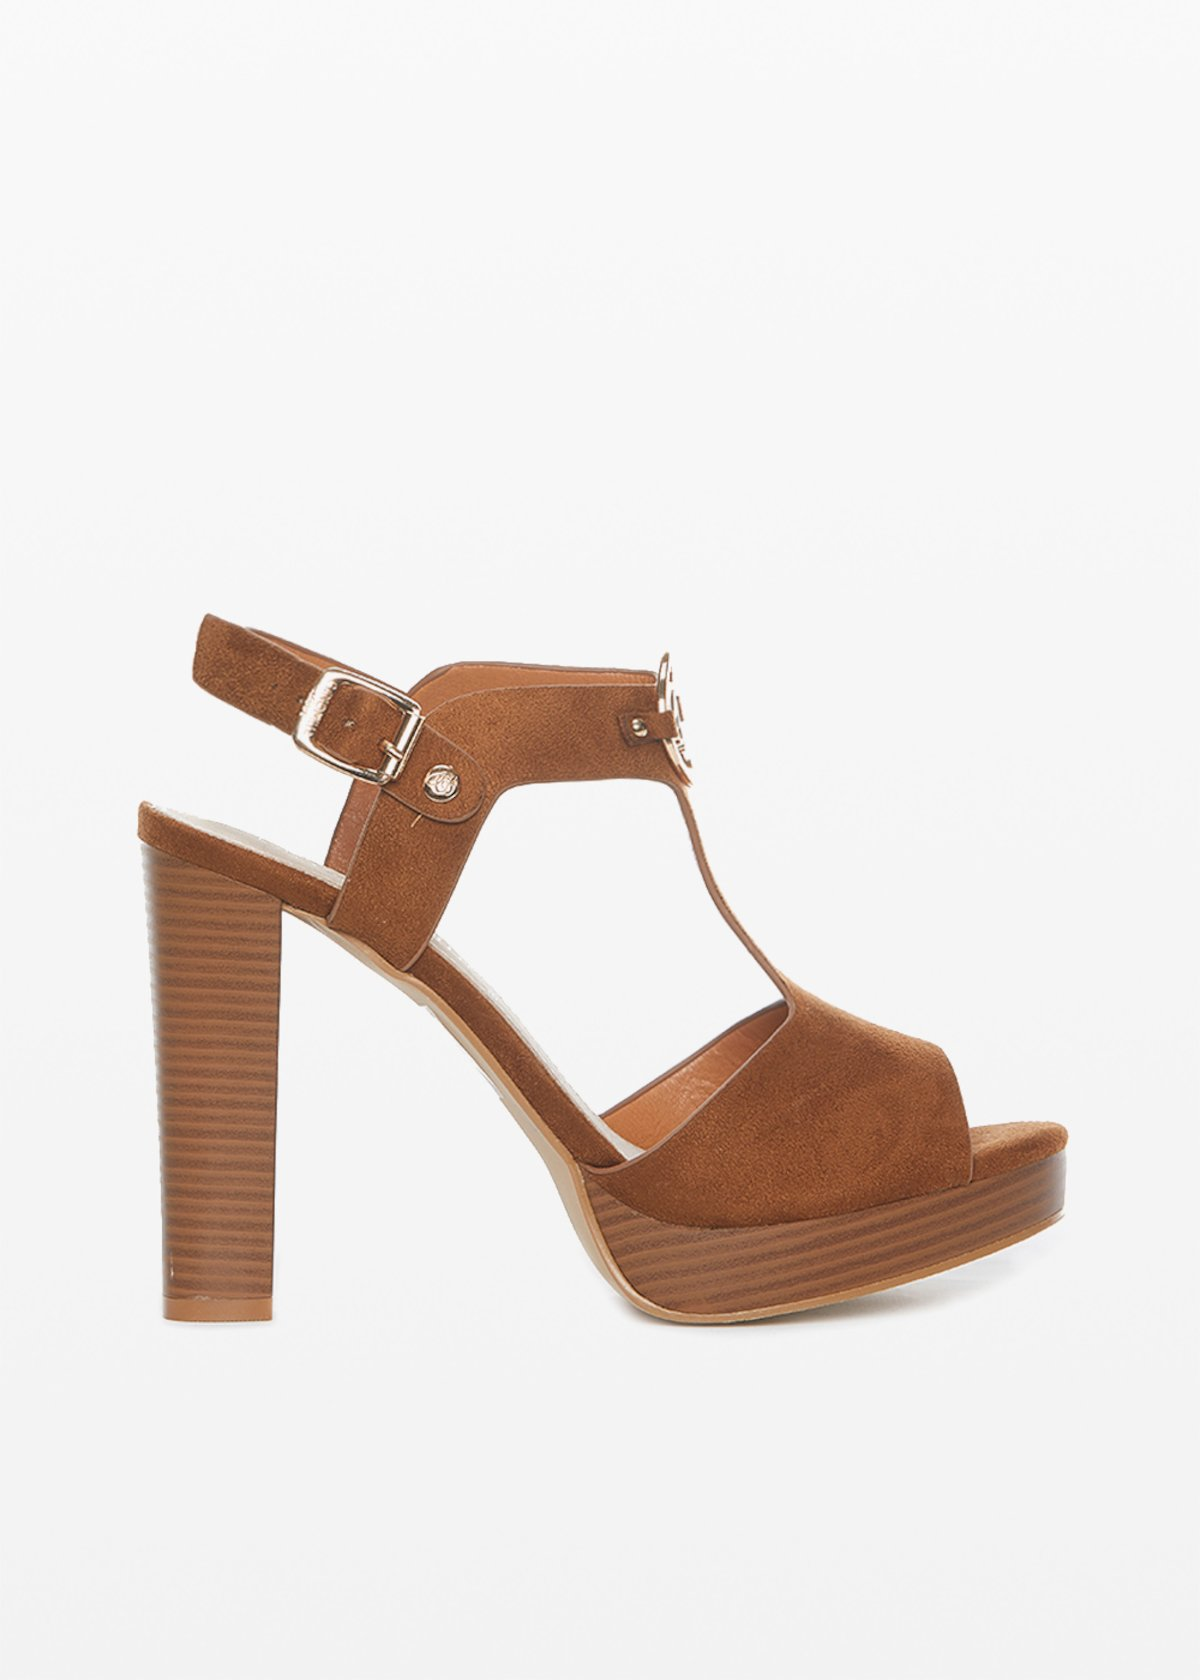 Sexia sandal with light gold metal ring